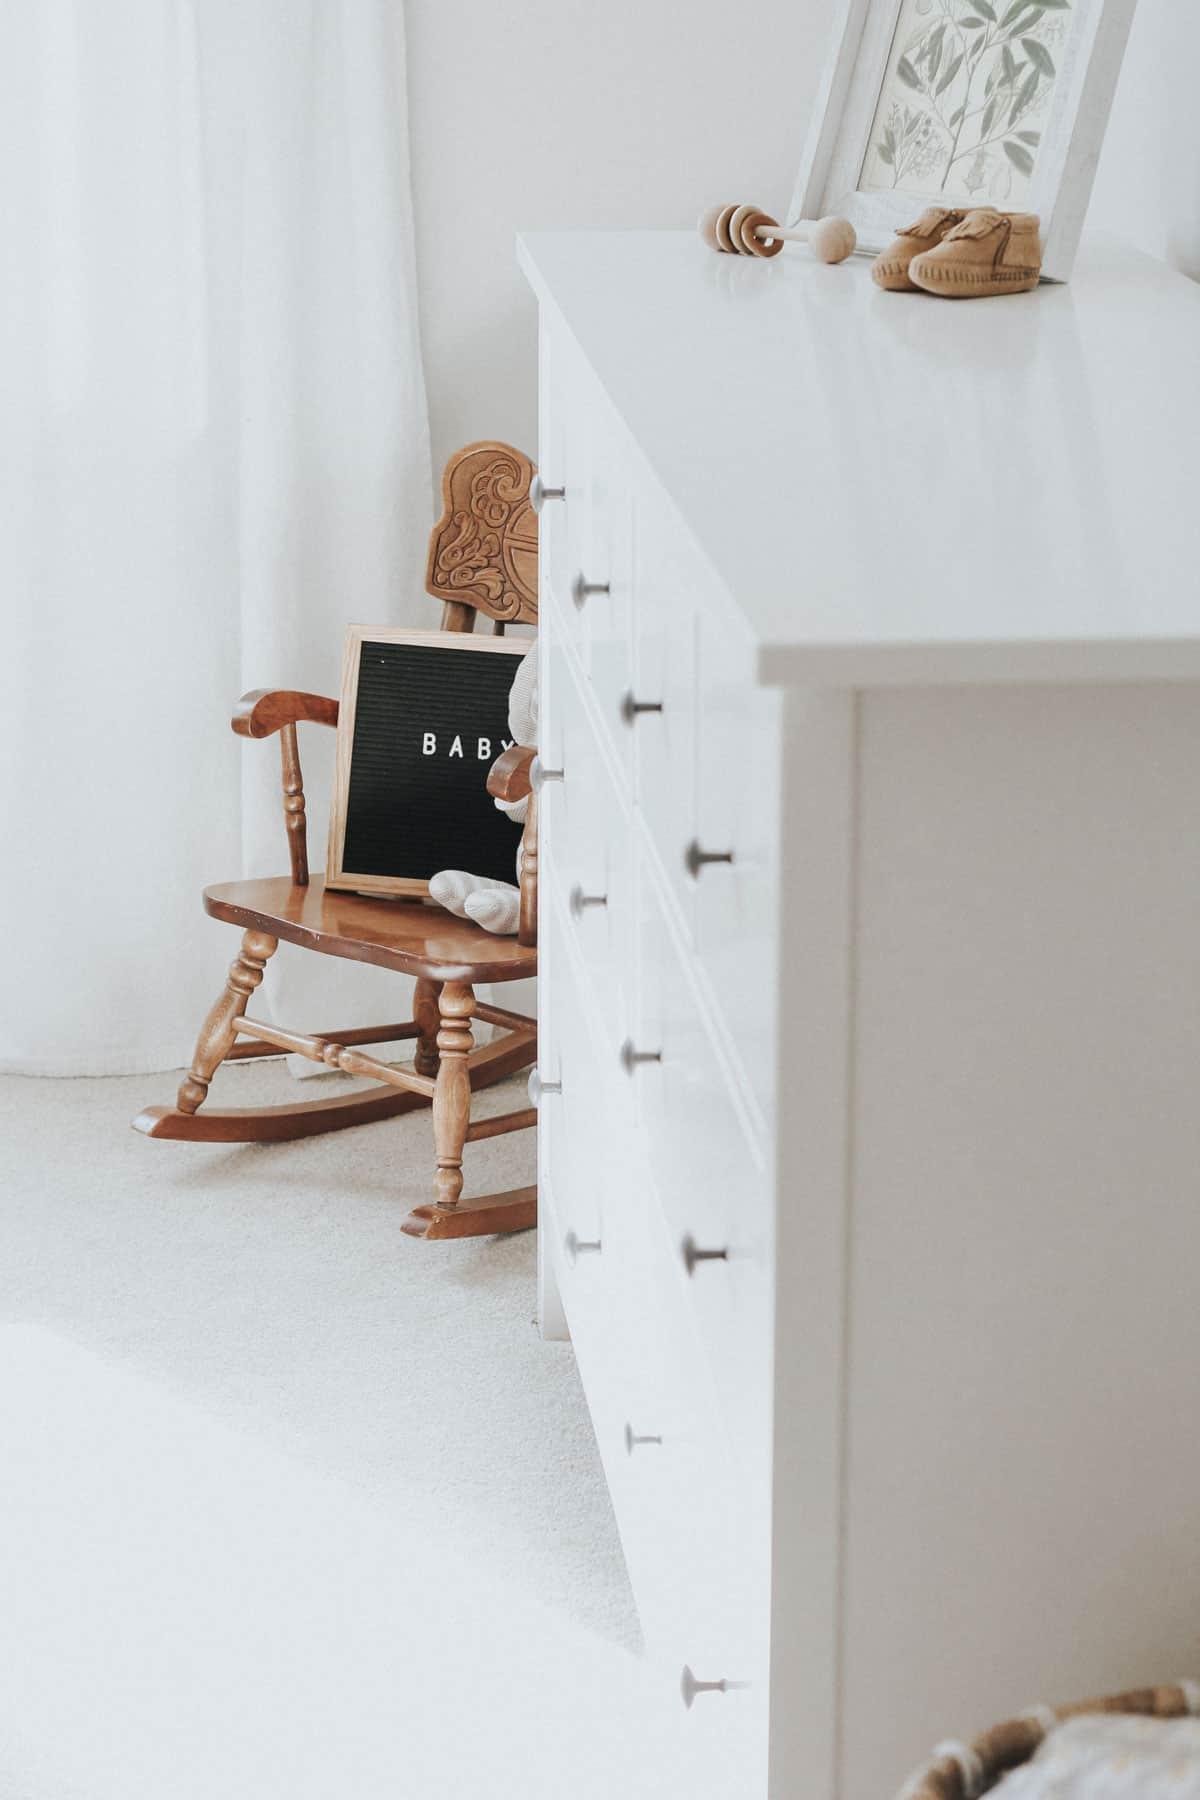 Rocking chair, letter board, and white dresser in a neutral nursery.